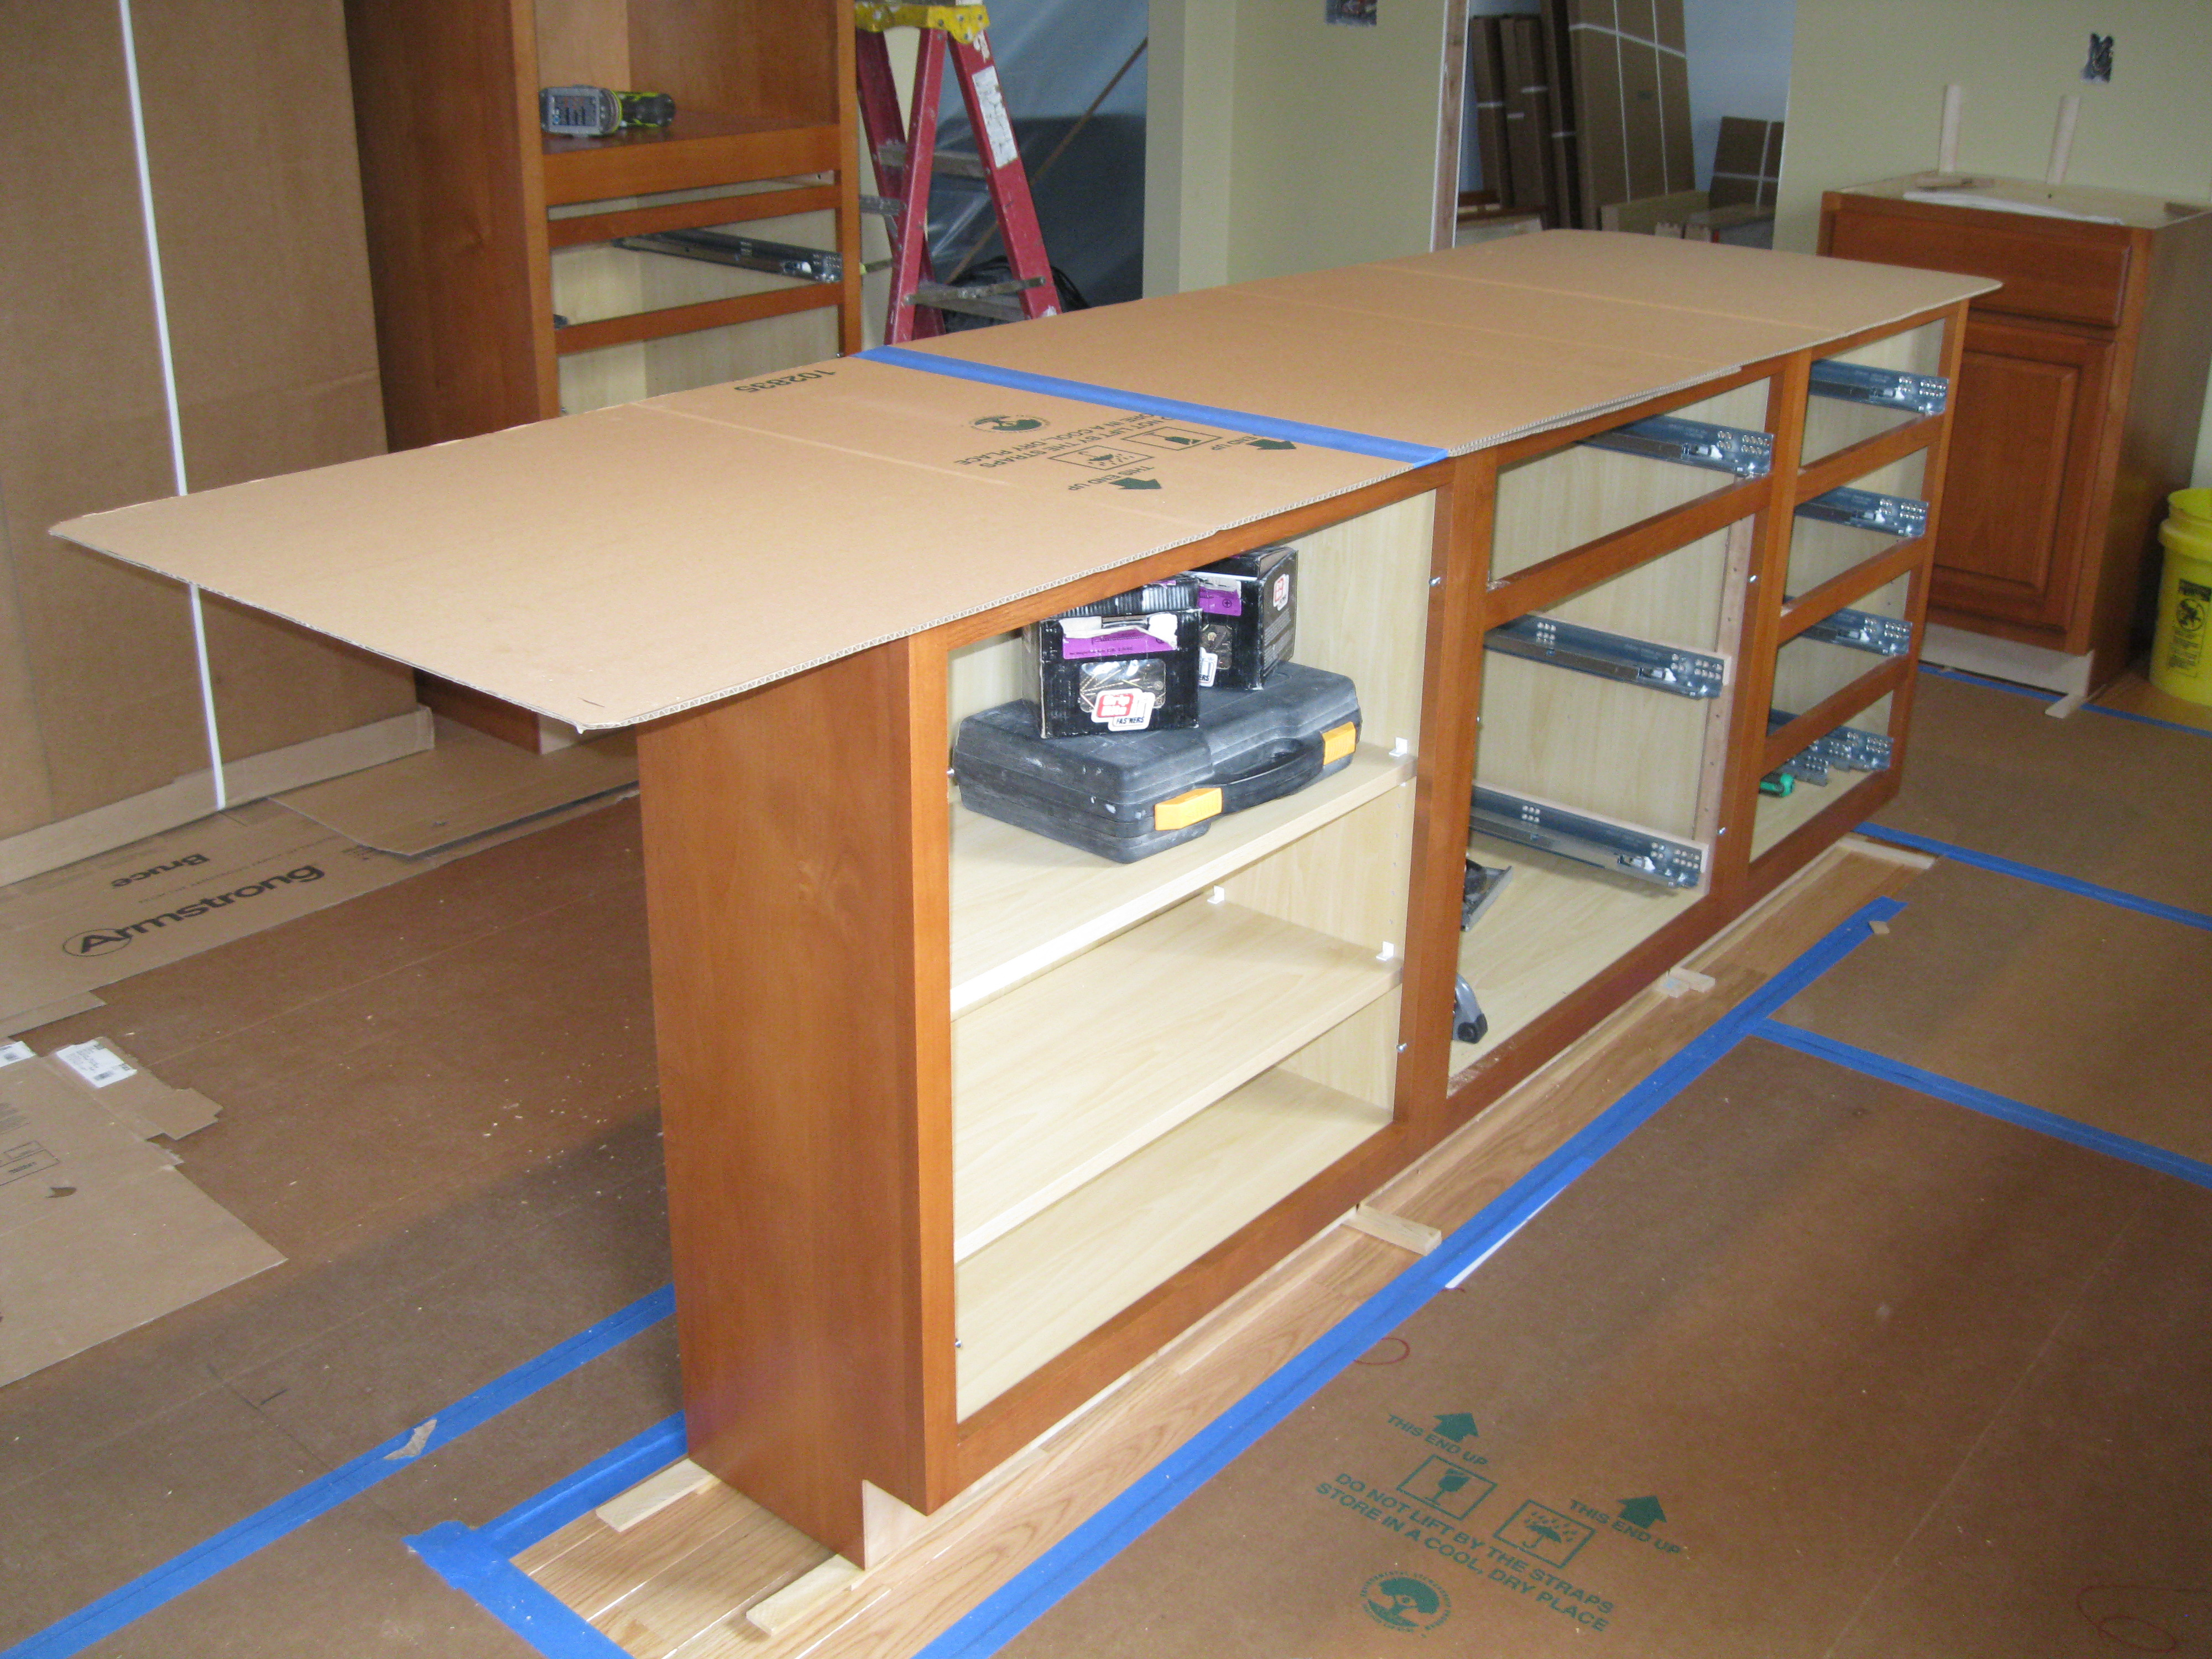 how to build a kitchen island with cabinets moen vestige faucet free plans base diy make